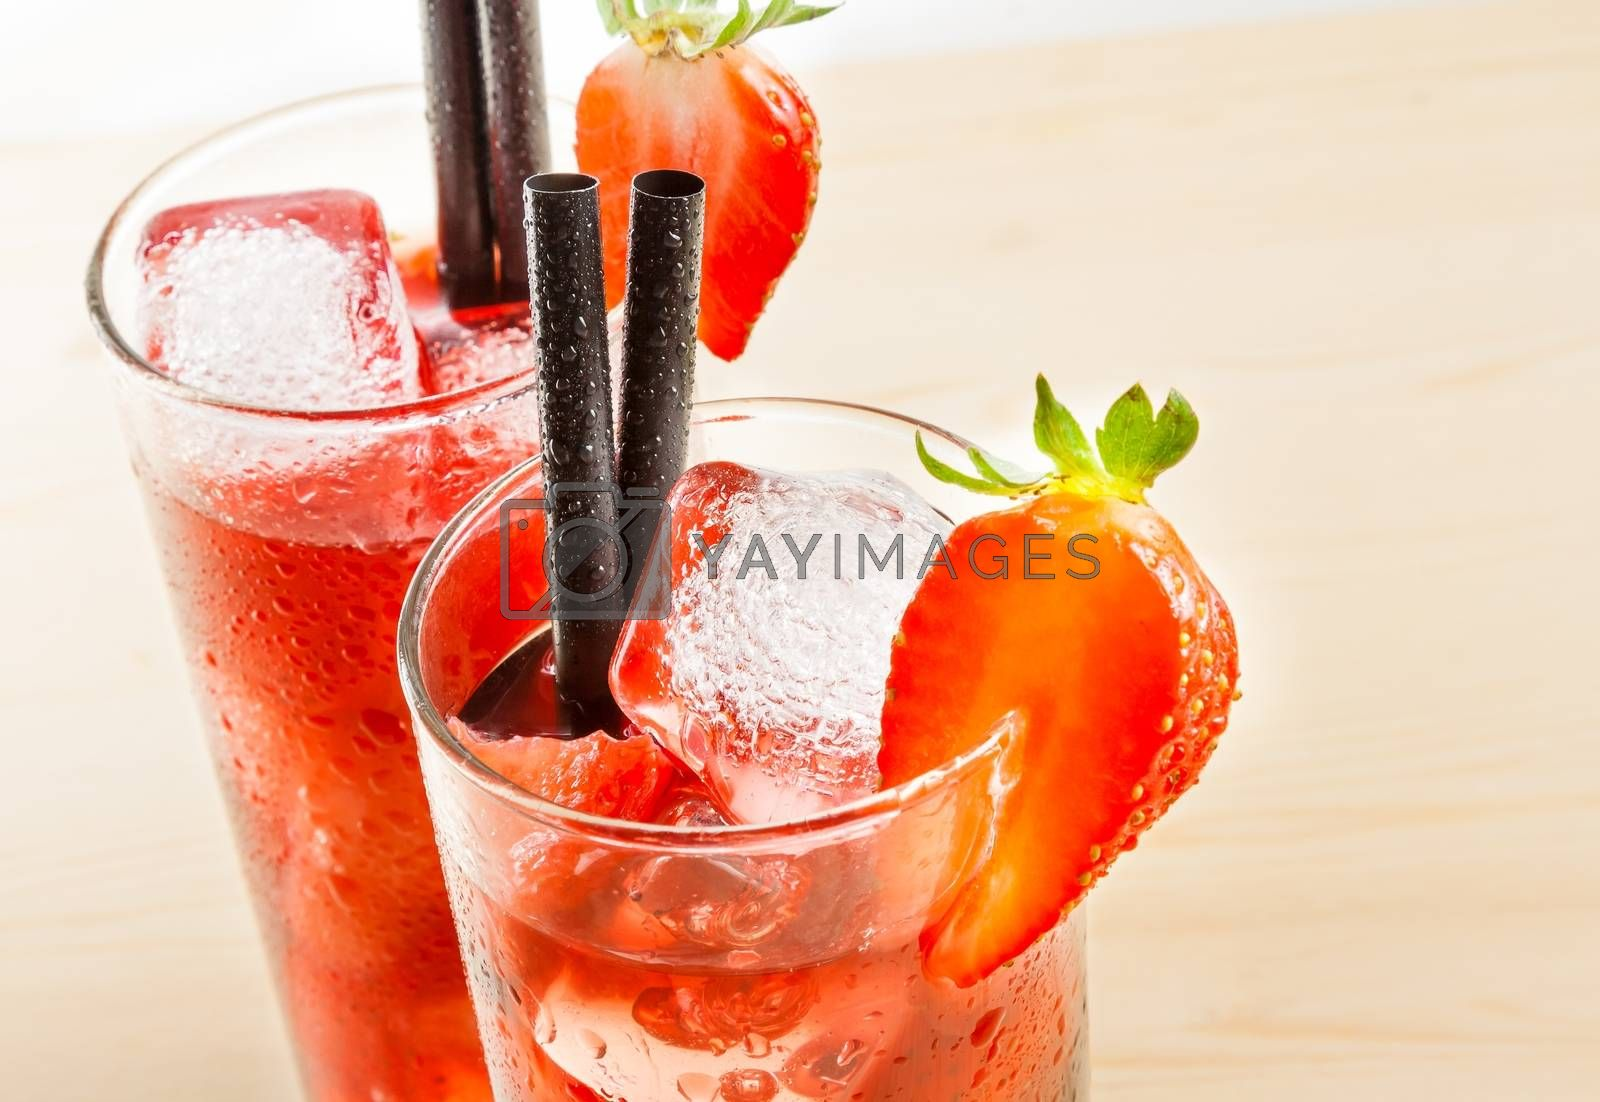 detail of two glasses of strawberry cocktail with ice on light wood table  by donfiore